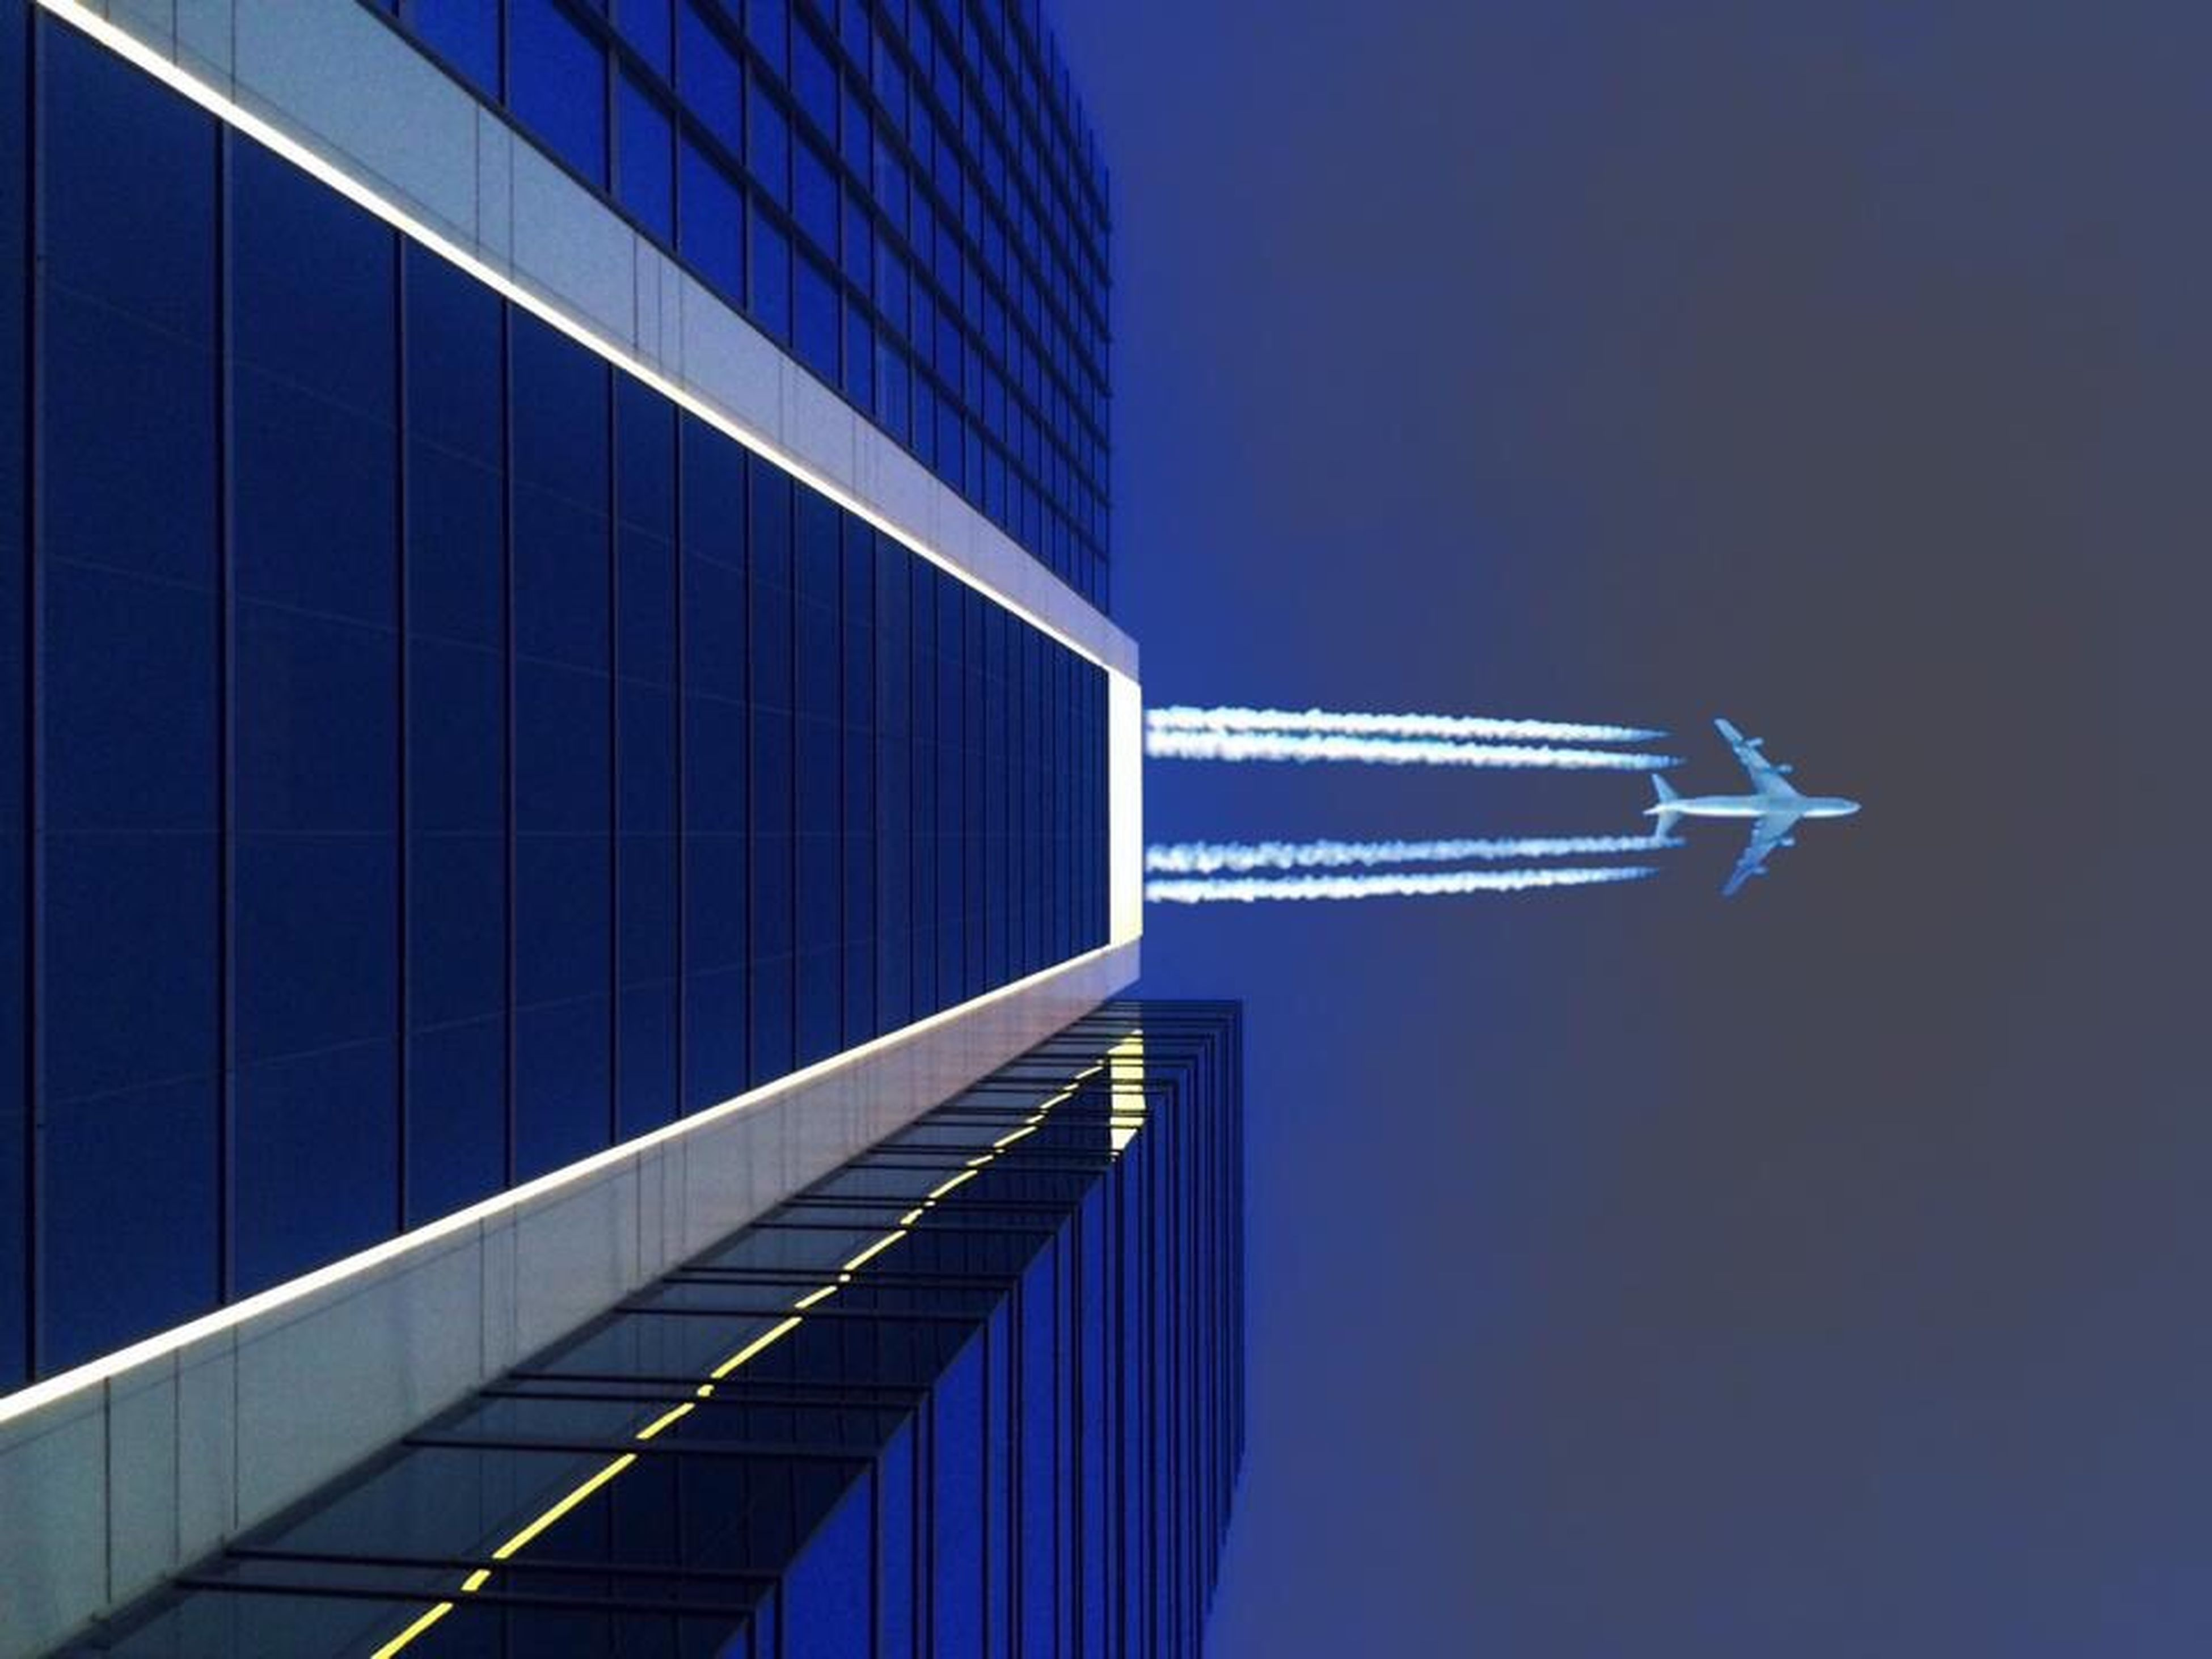 architecture, built structure, building exterior, low angle view, modern, city, skyscraper, tall - high, office building, blue, clear sky, tower, capital cities, sky, famous place, travel destinations, outdoors, travel, tall, no people